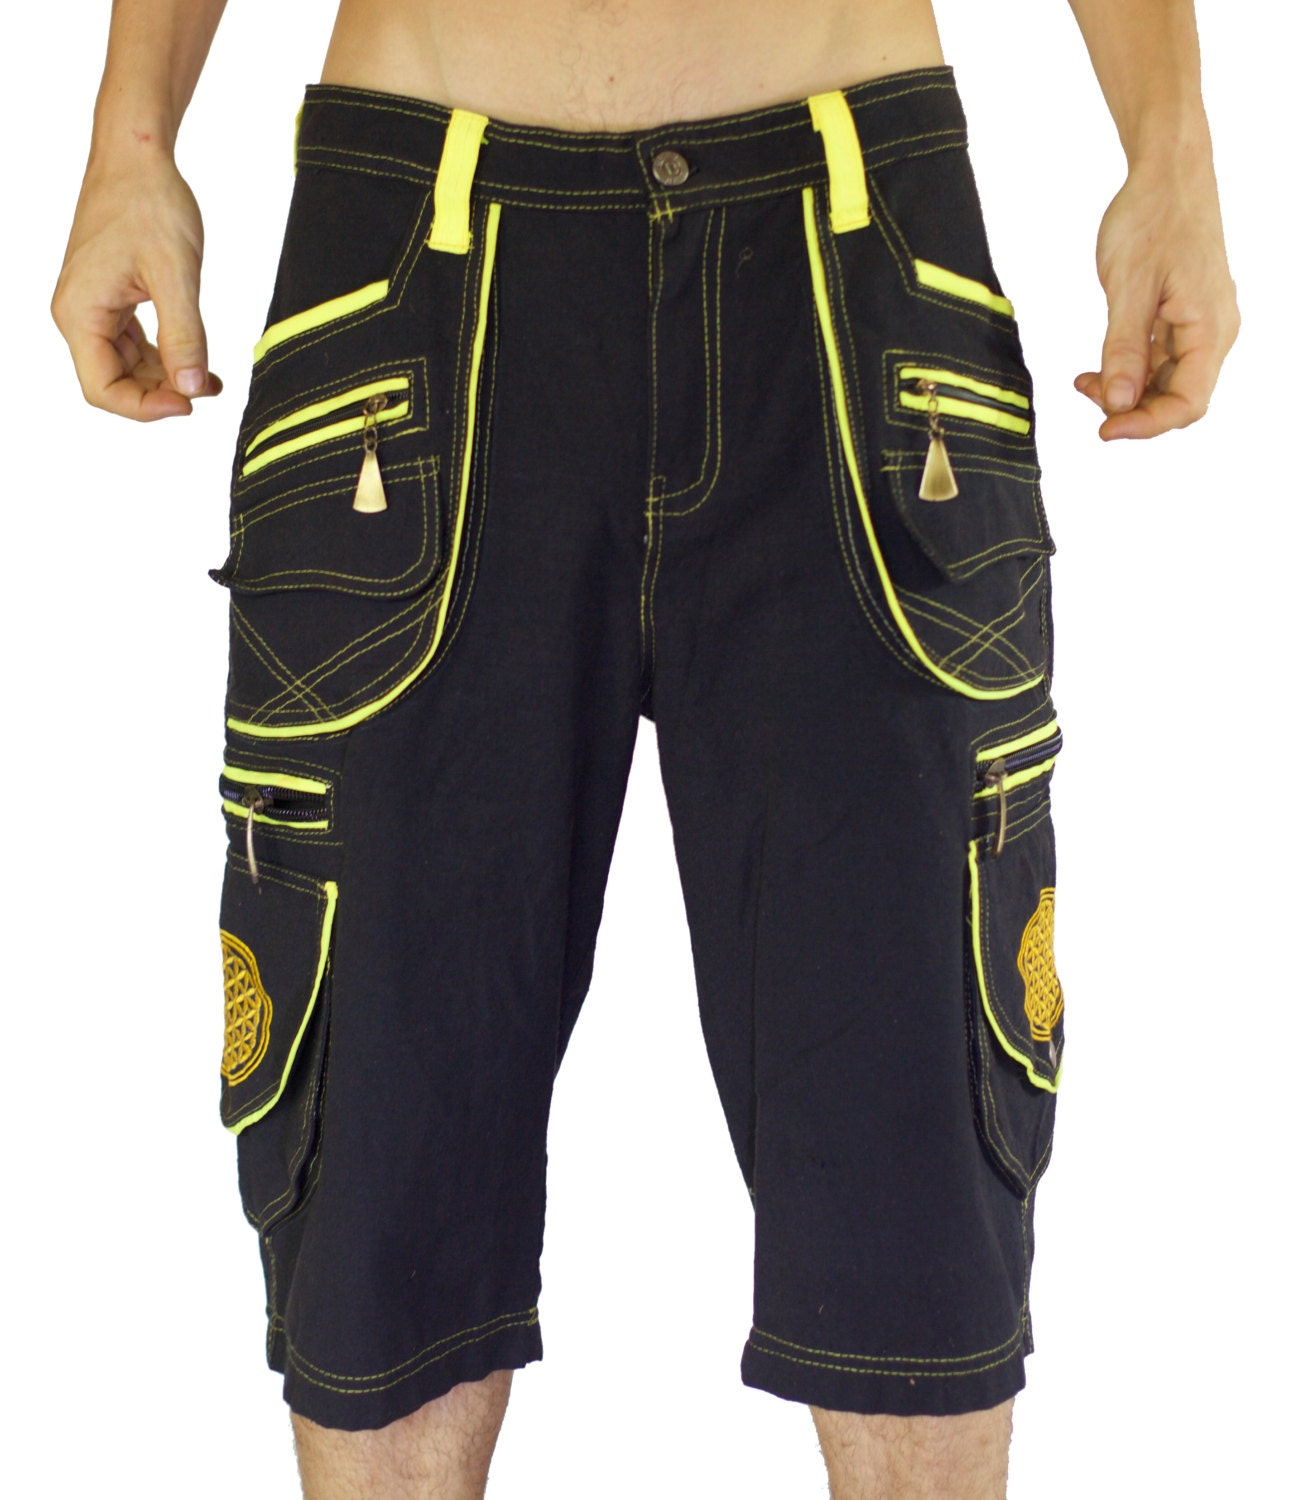 Goa Pant clamdiggers many pockets with flower of life embroidery fully customizable made after order kRxs5g56